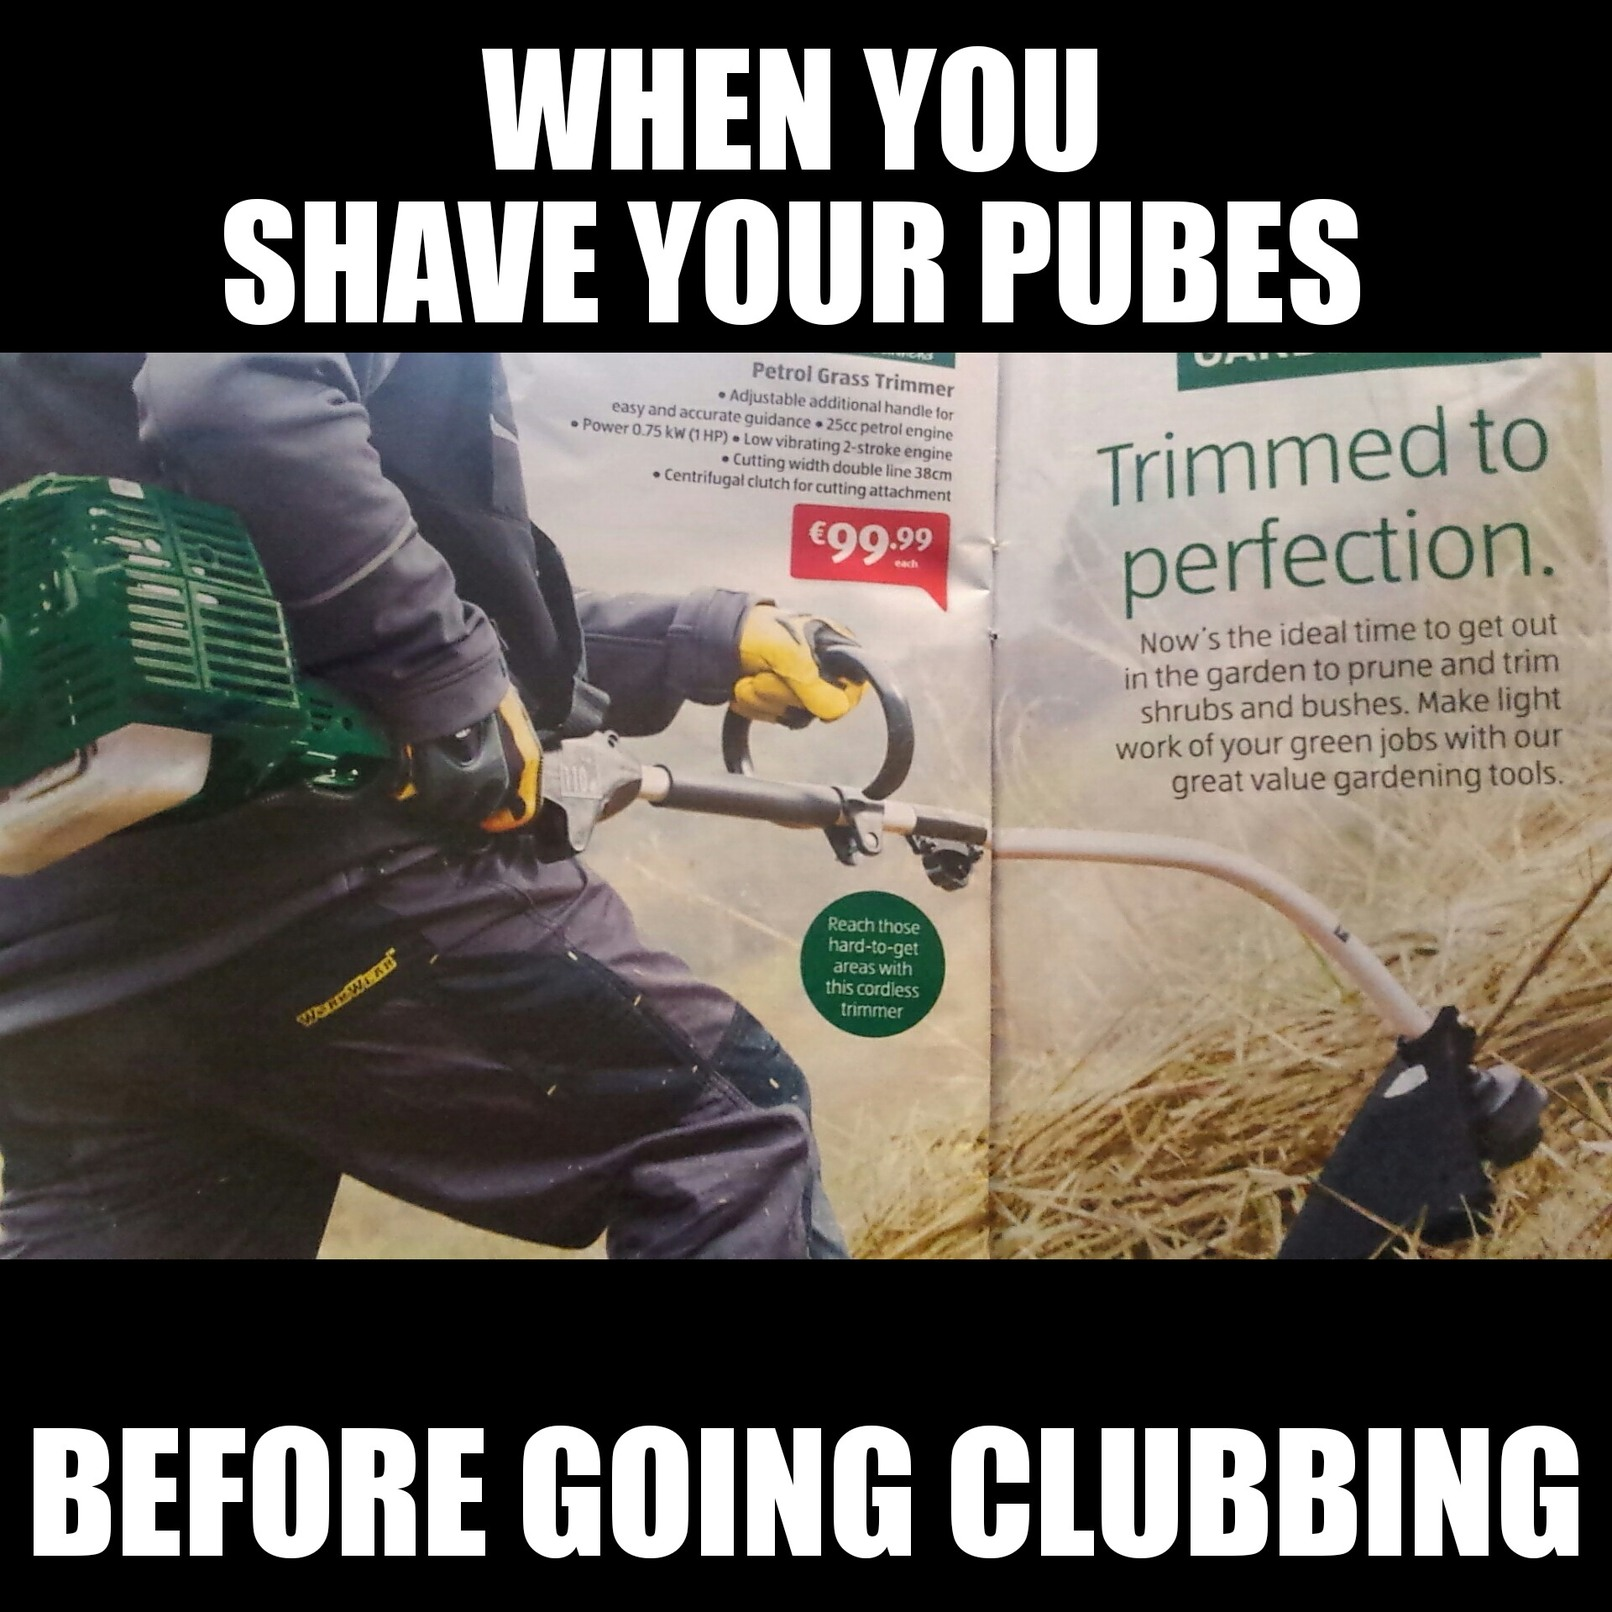 Trimmed to perfection - meme